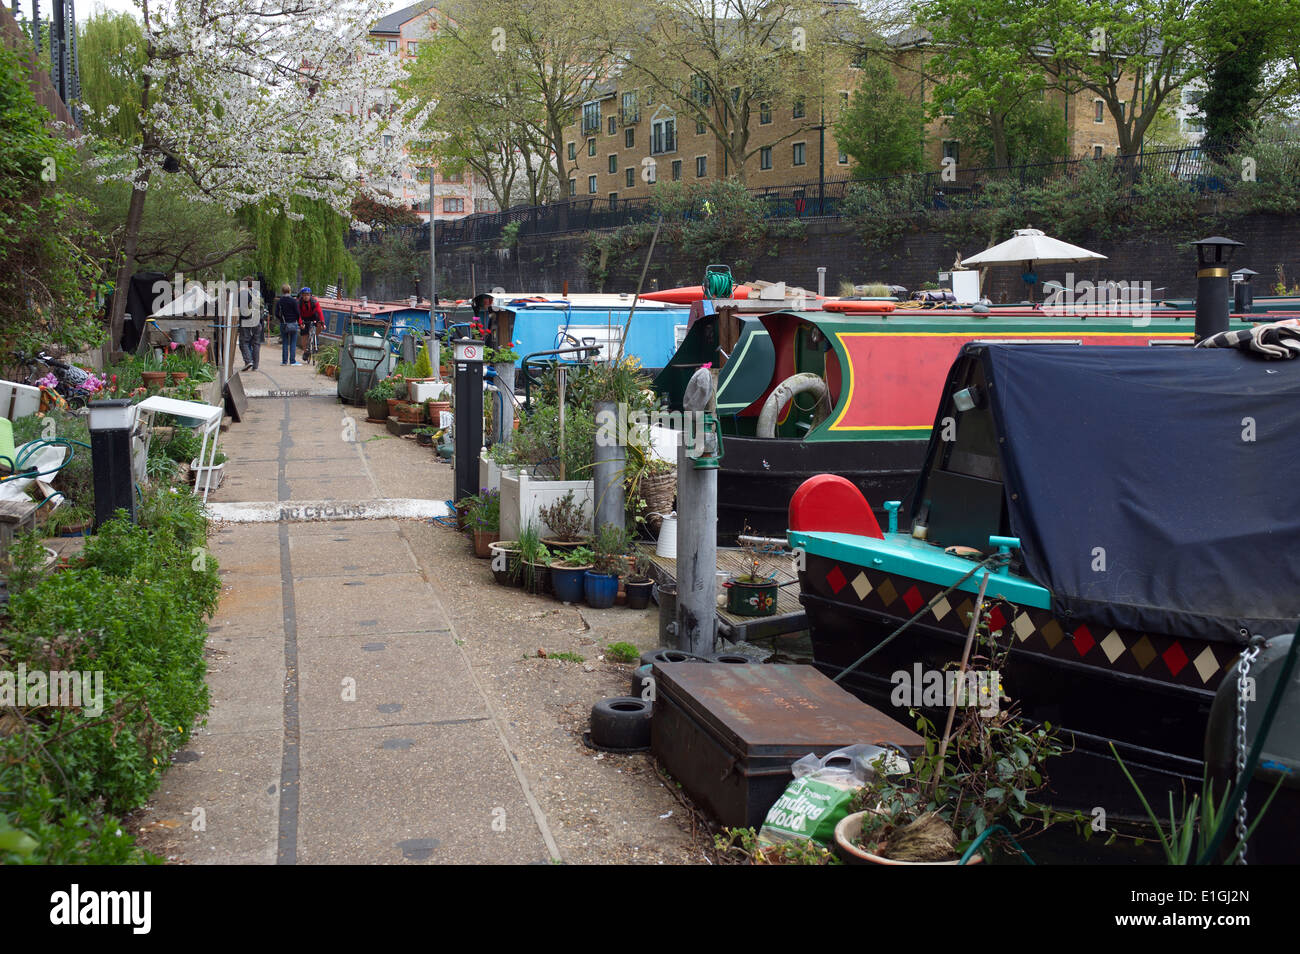 Little Venice London towpath and canal barges. England, UK. - Stock Image